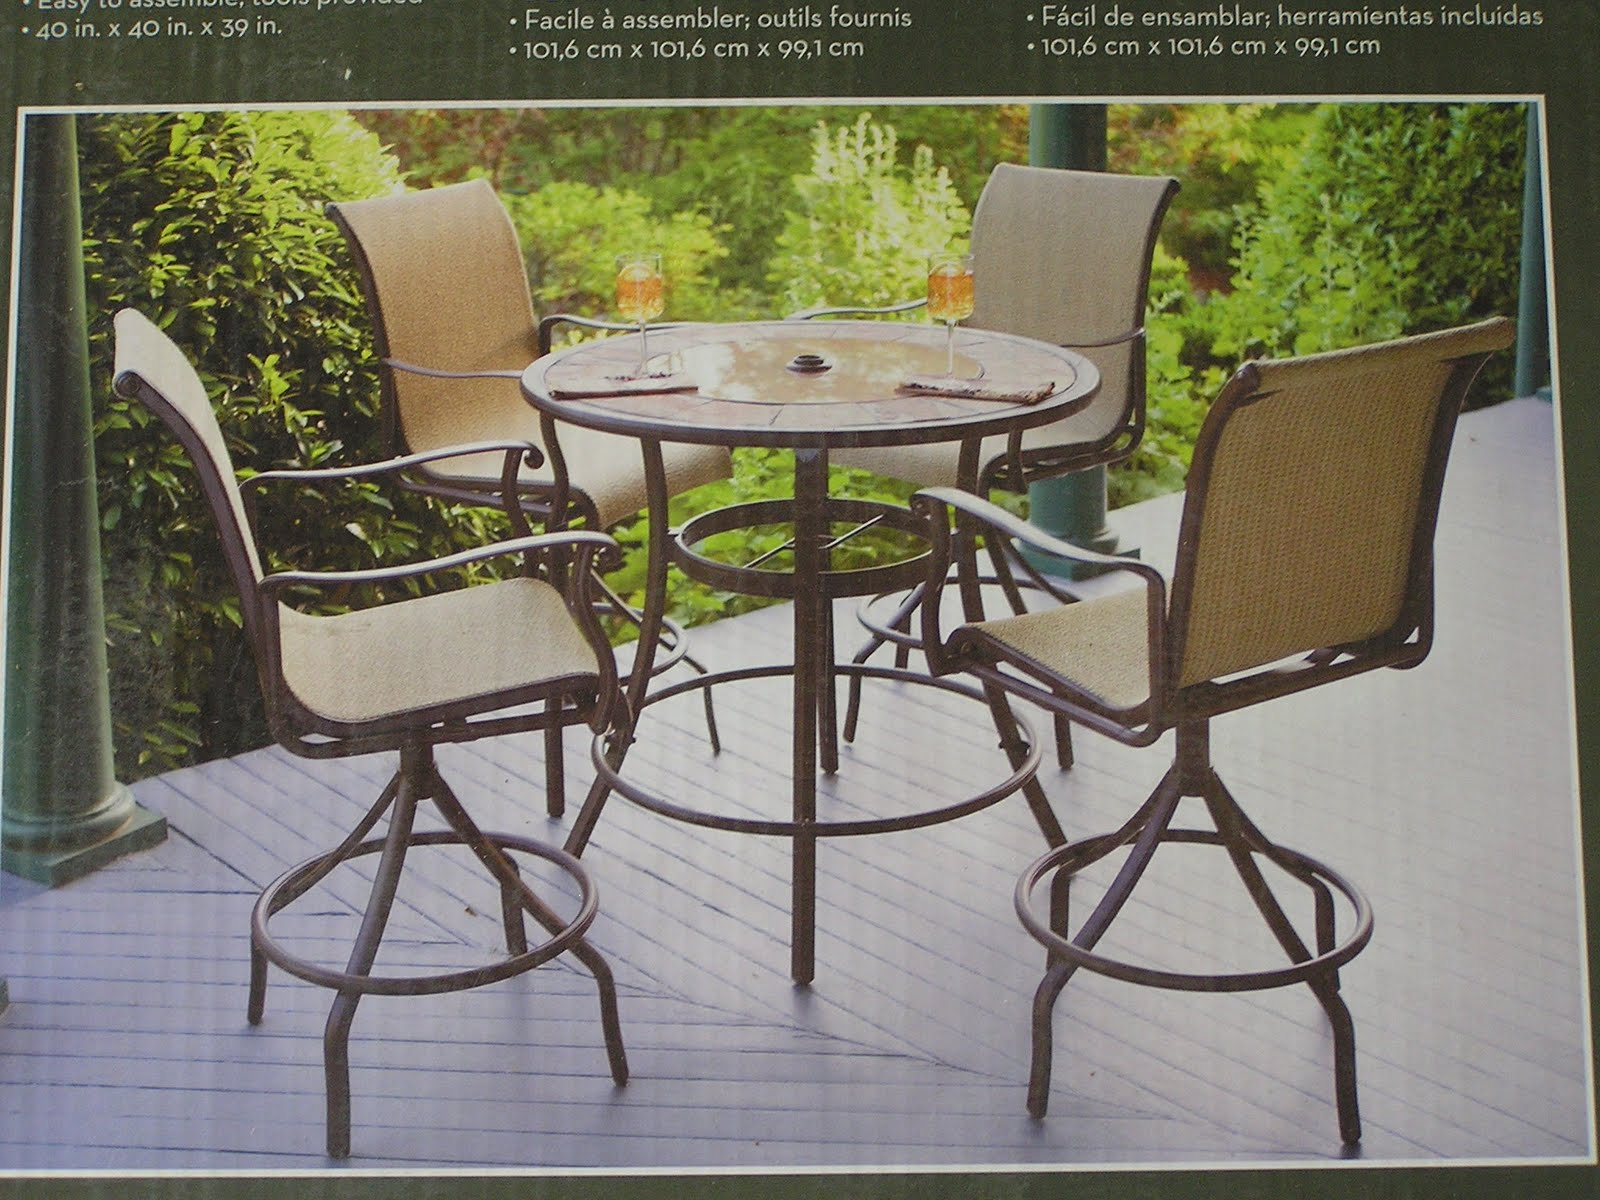 Patio table set patio design ideas for Outdoor patio table and chairs